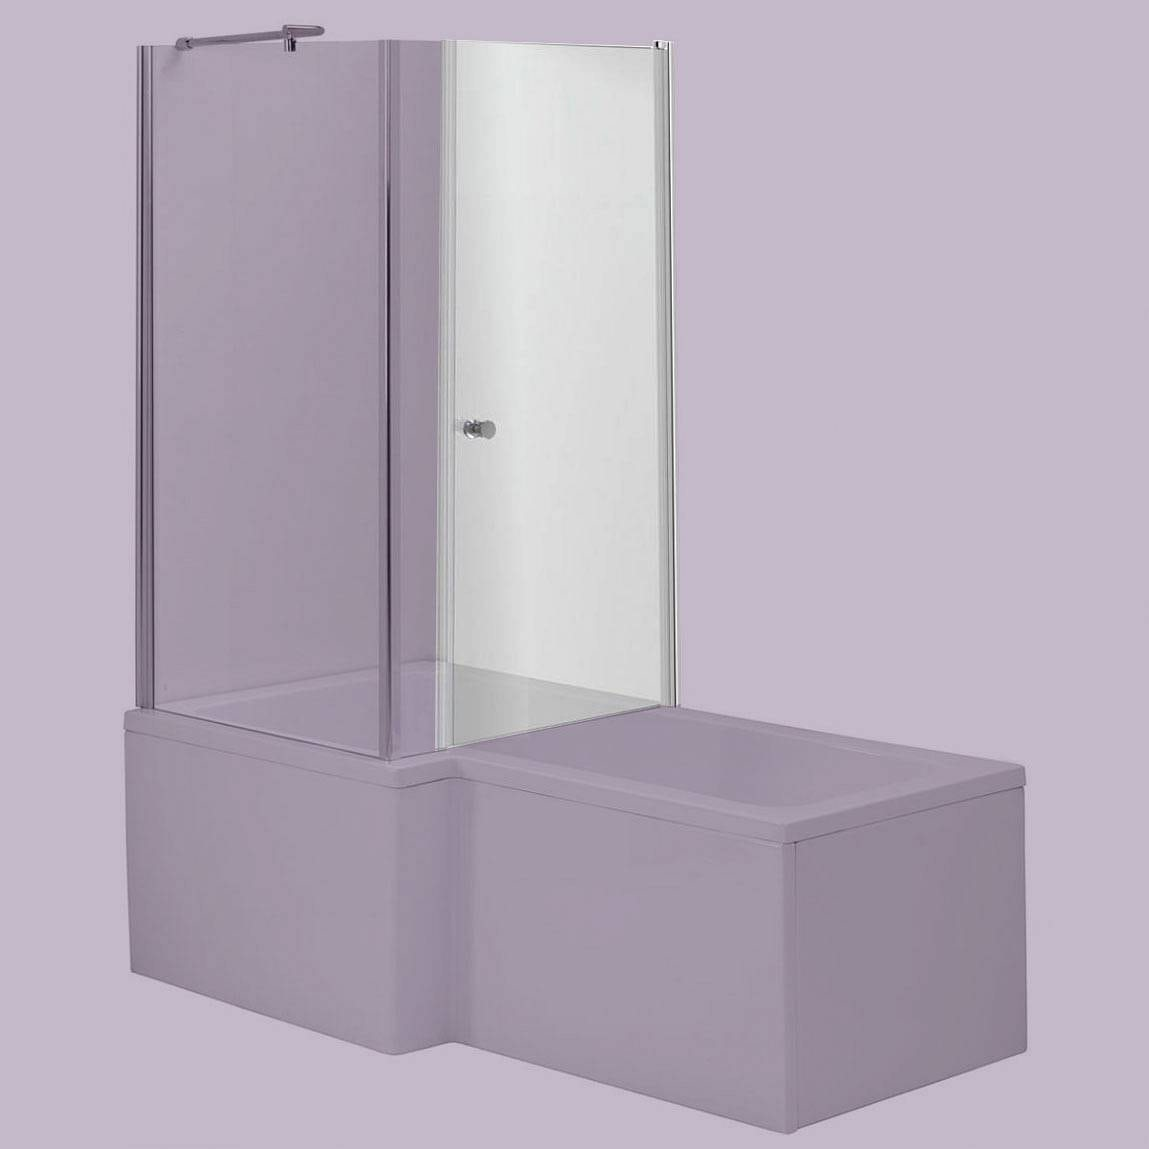 6mm Glass Door For Square Shaped Shower Bath Victoriaplum Com